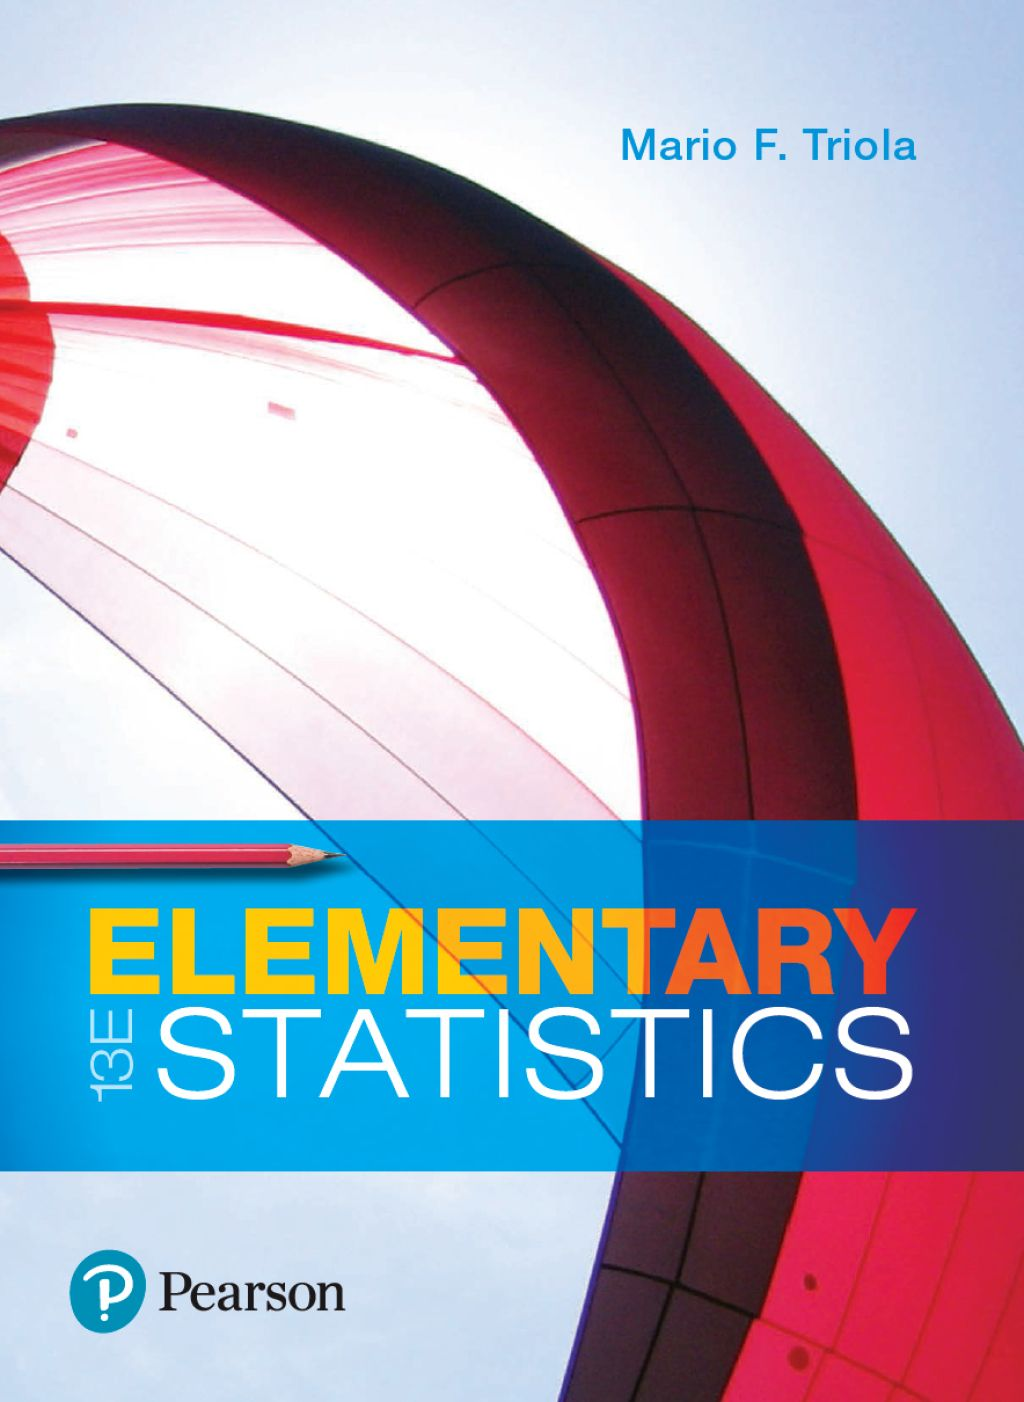 Elementary Statistics (eBook Rental) in 2019 | Products | Online